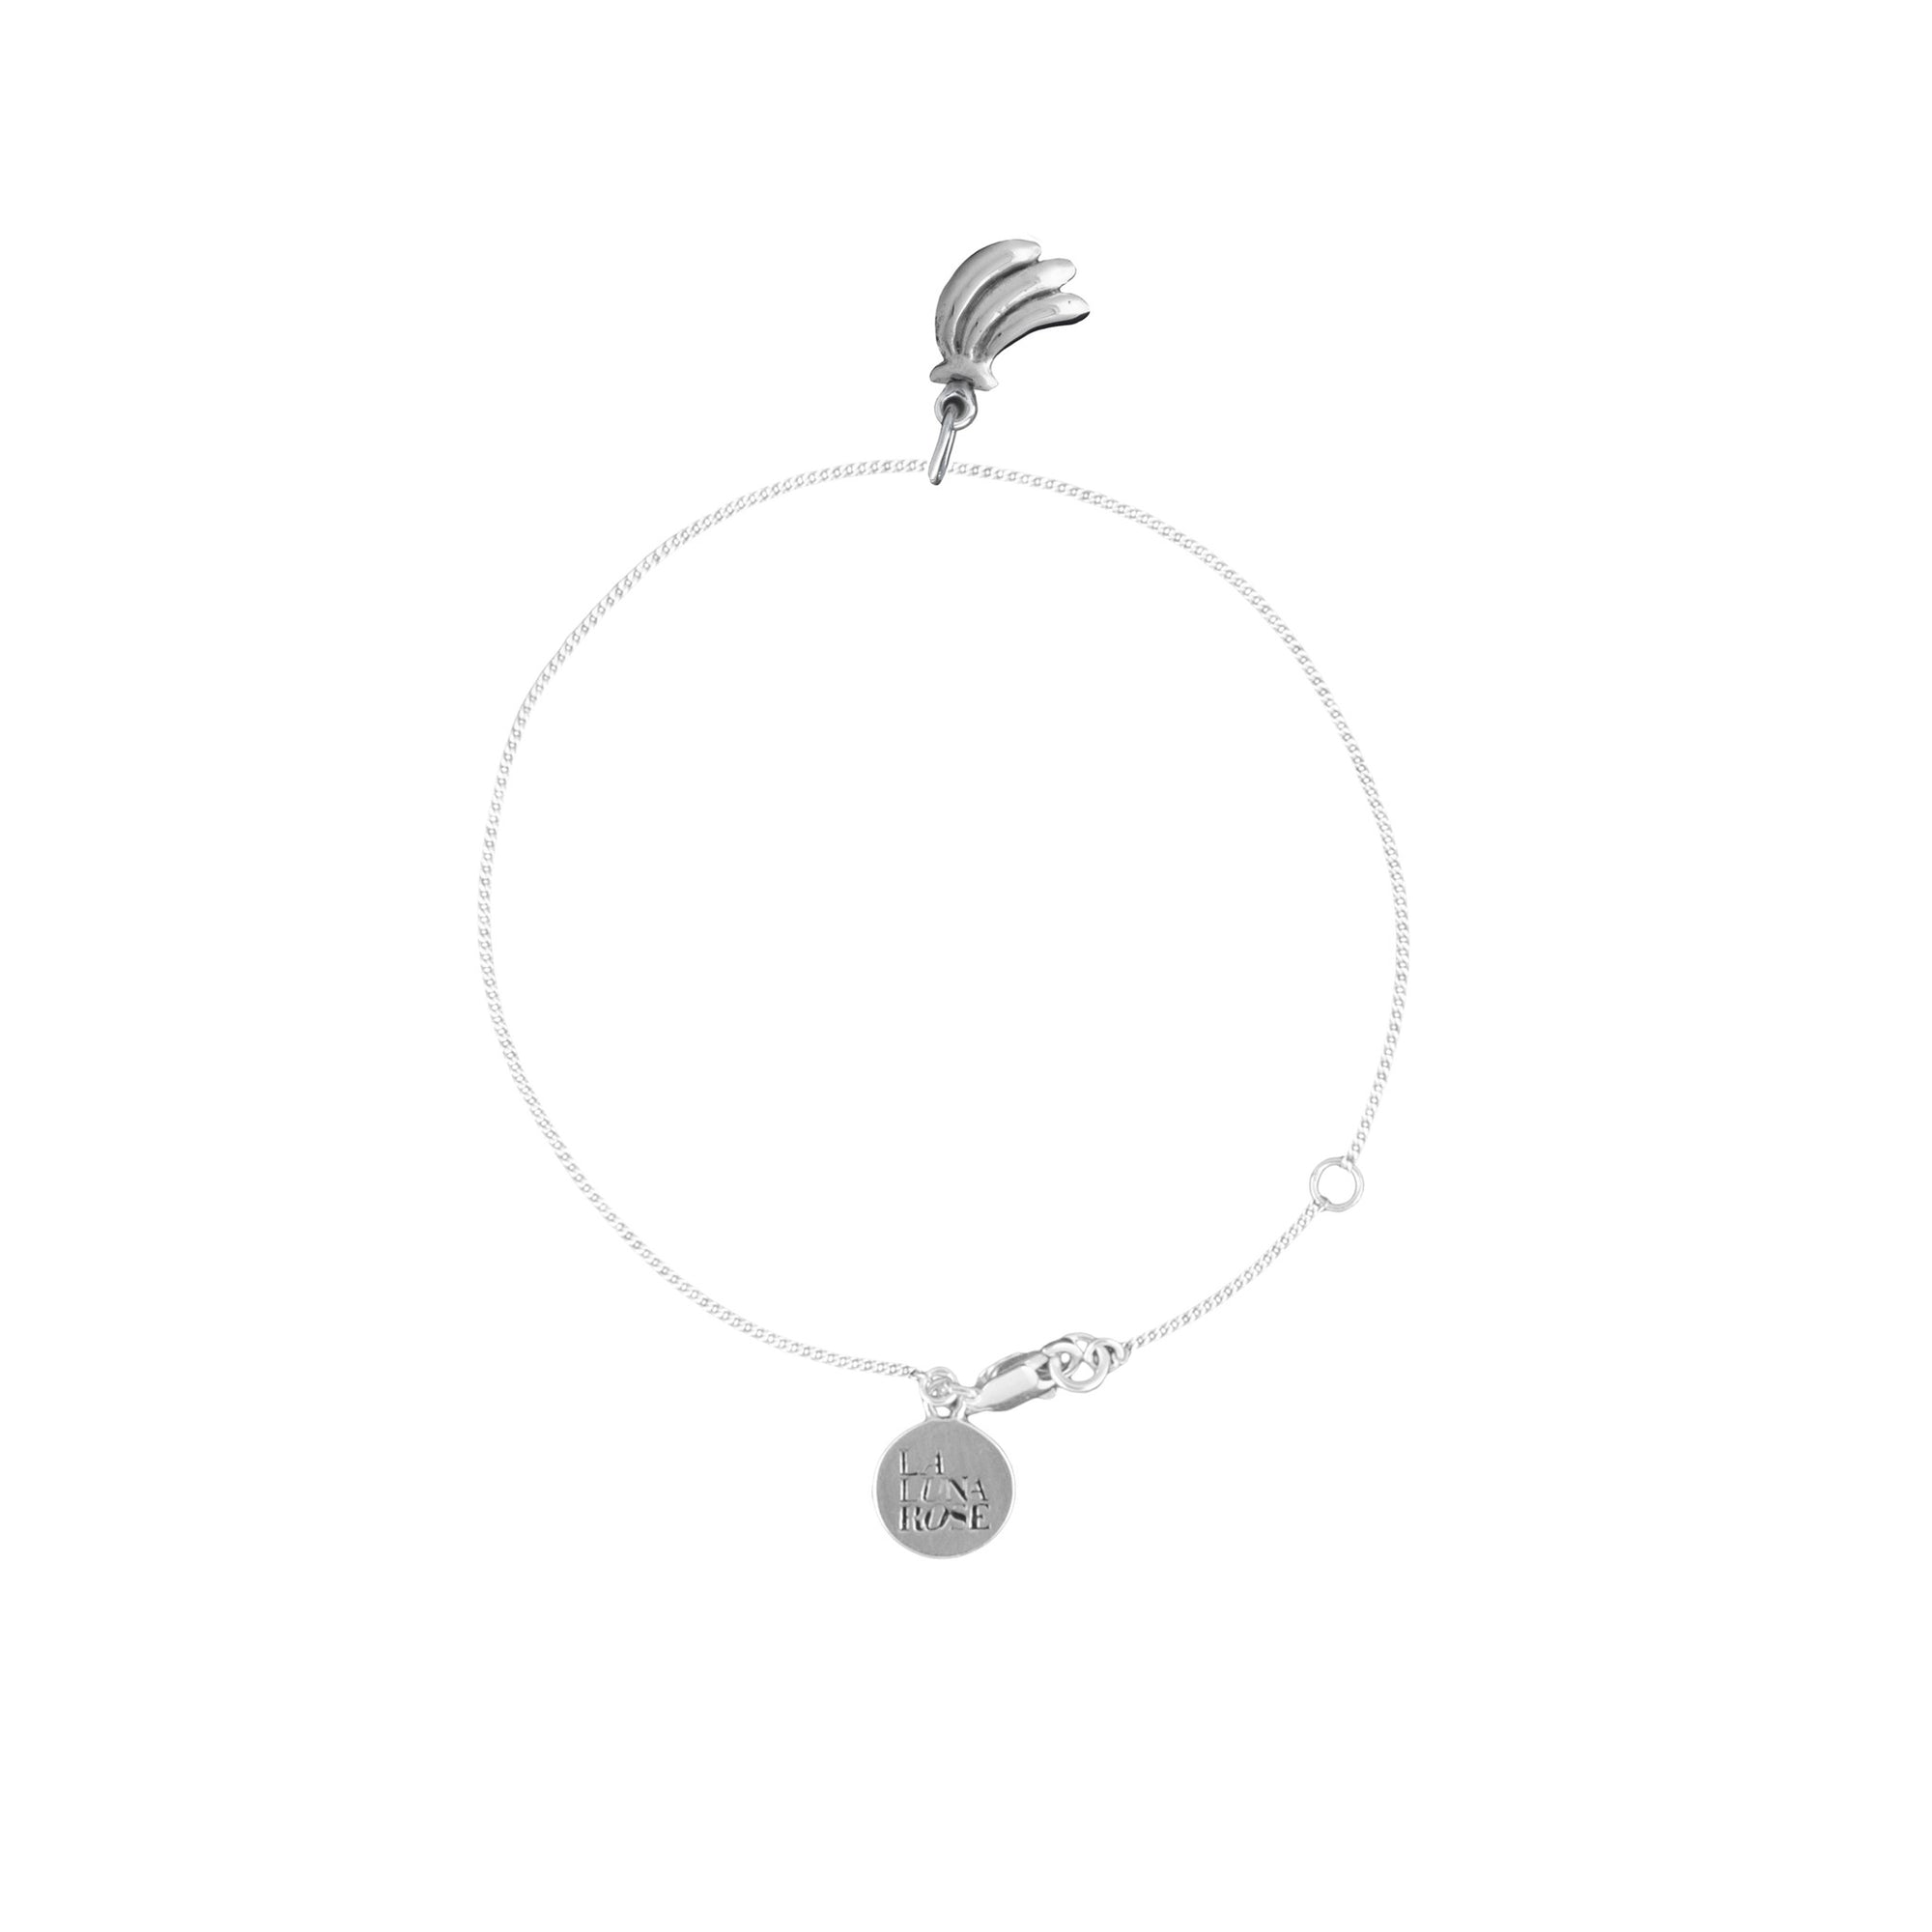 Luna & Rose - You Drive me Bananas Charm - Silver